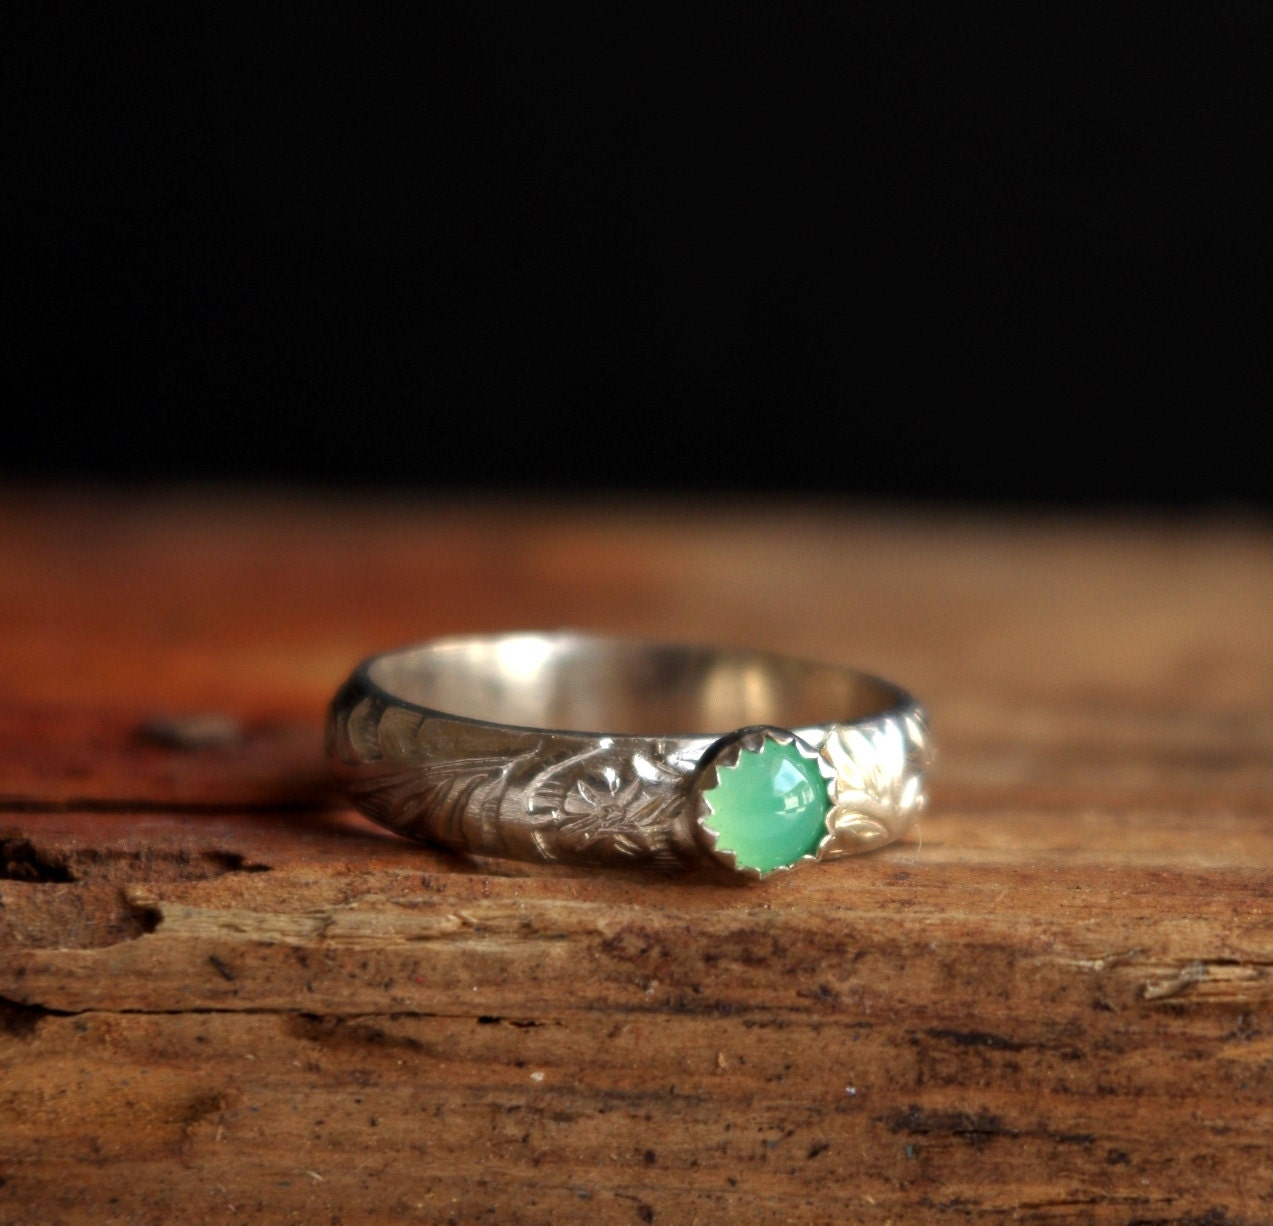 Chrysoprase Silver Ring Gemstone Ring May Birthstone Ring. Gold Diamond Band. Initial Pendant Necklace. Rose Gold Cuff Bangle. 42 Carat Diamond. Green Stone Rings. Colored Rings. Yellow Sapphire Earrings. Band With Diamonds